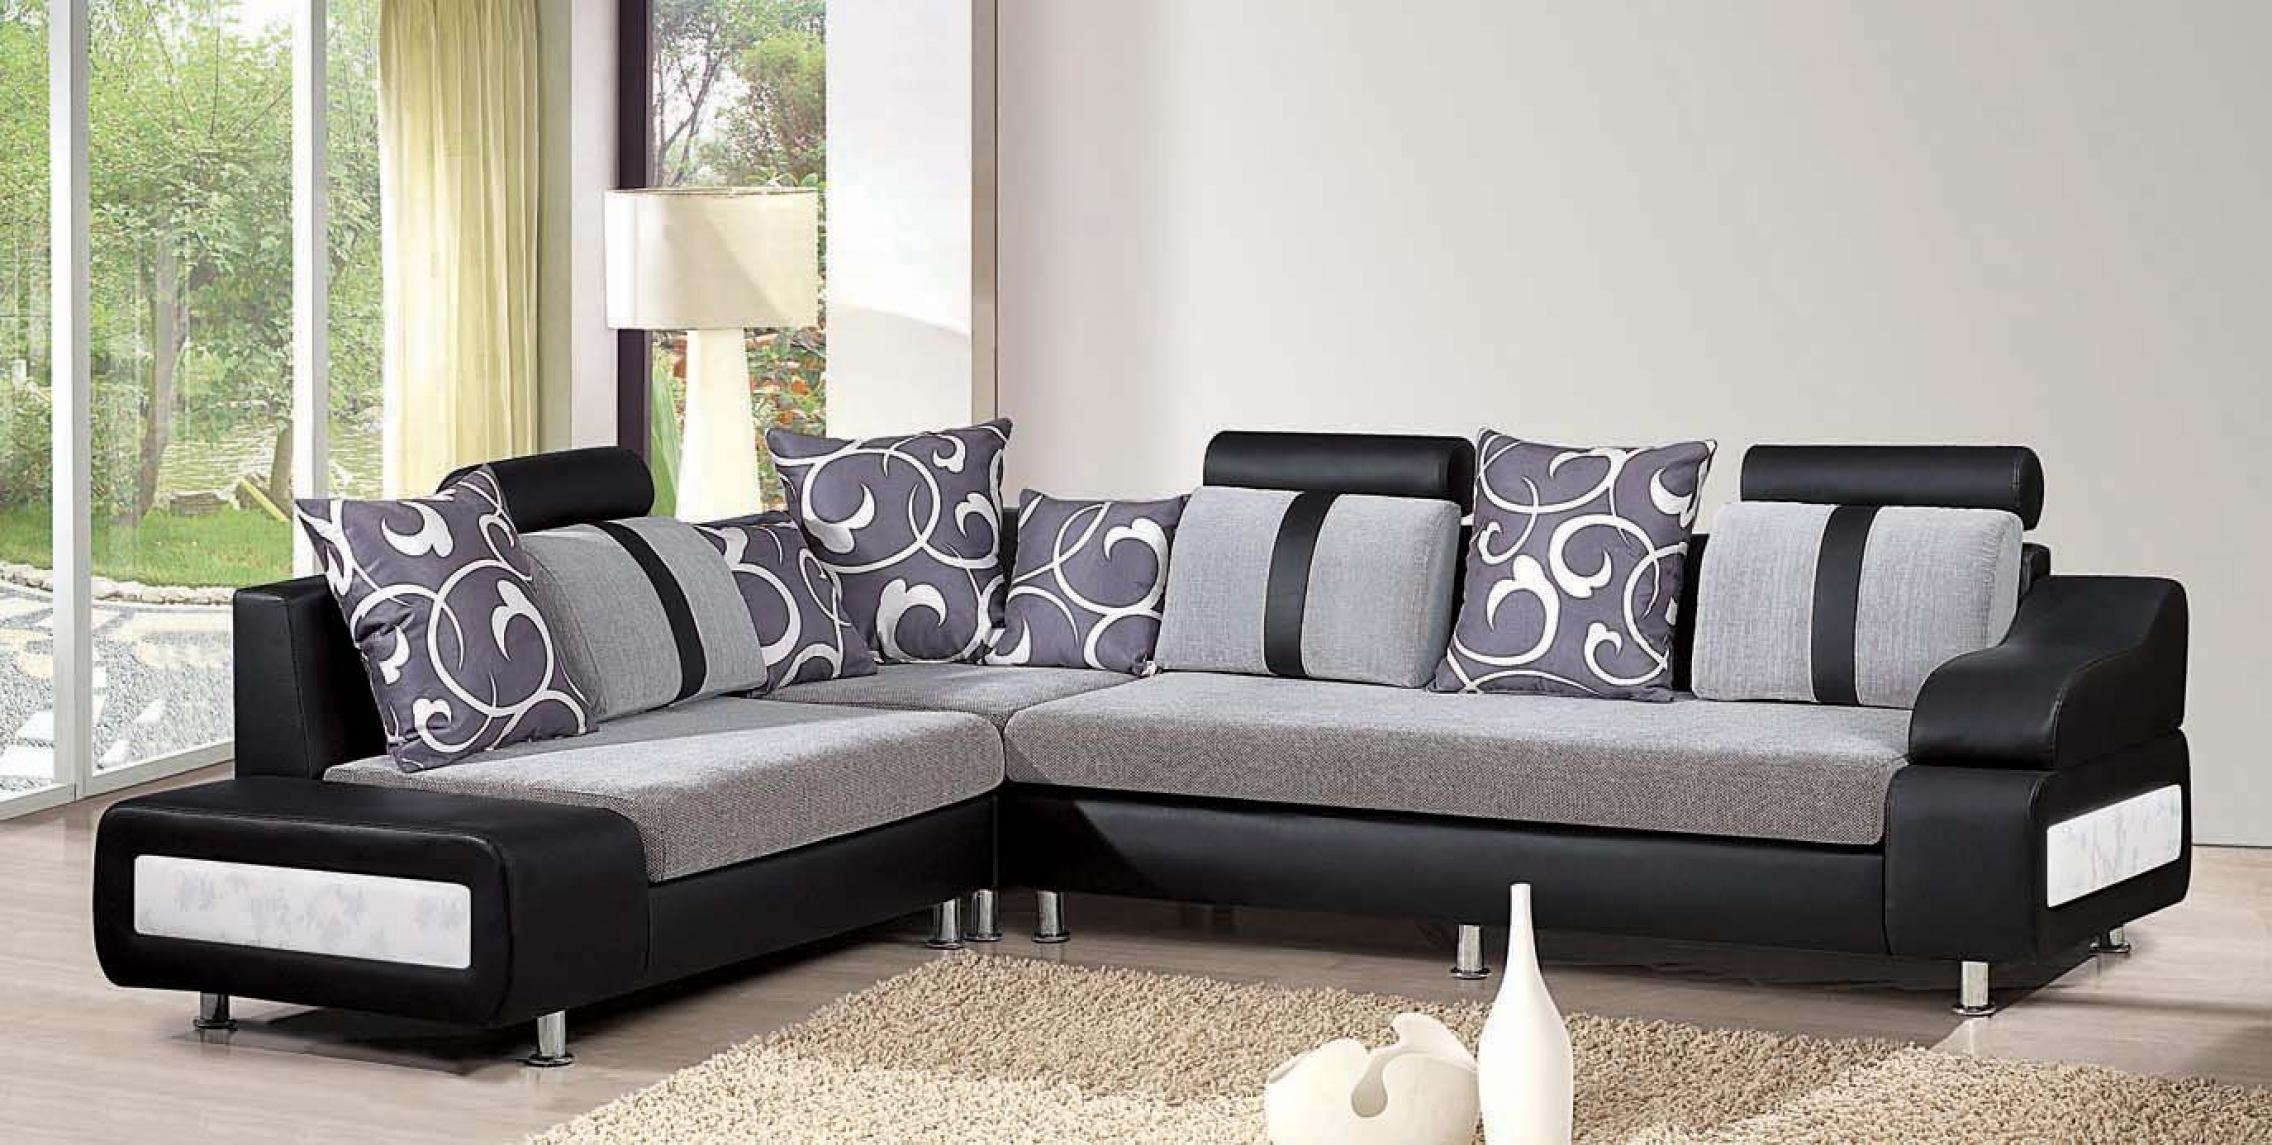 Living Room: Great Sofa Chairs For Living Room Sofa & Chair, Sofa With Living Room Sofa And Chair Sets (Image 13 of 20)